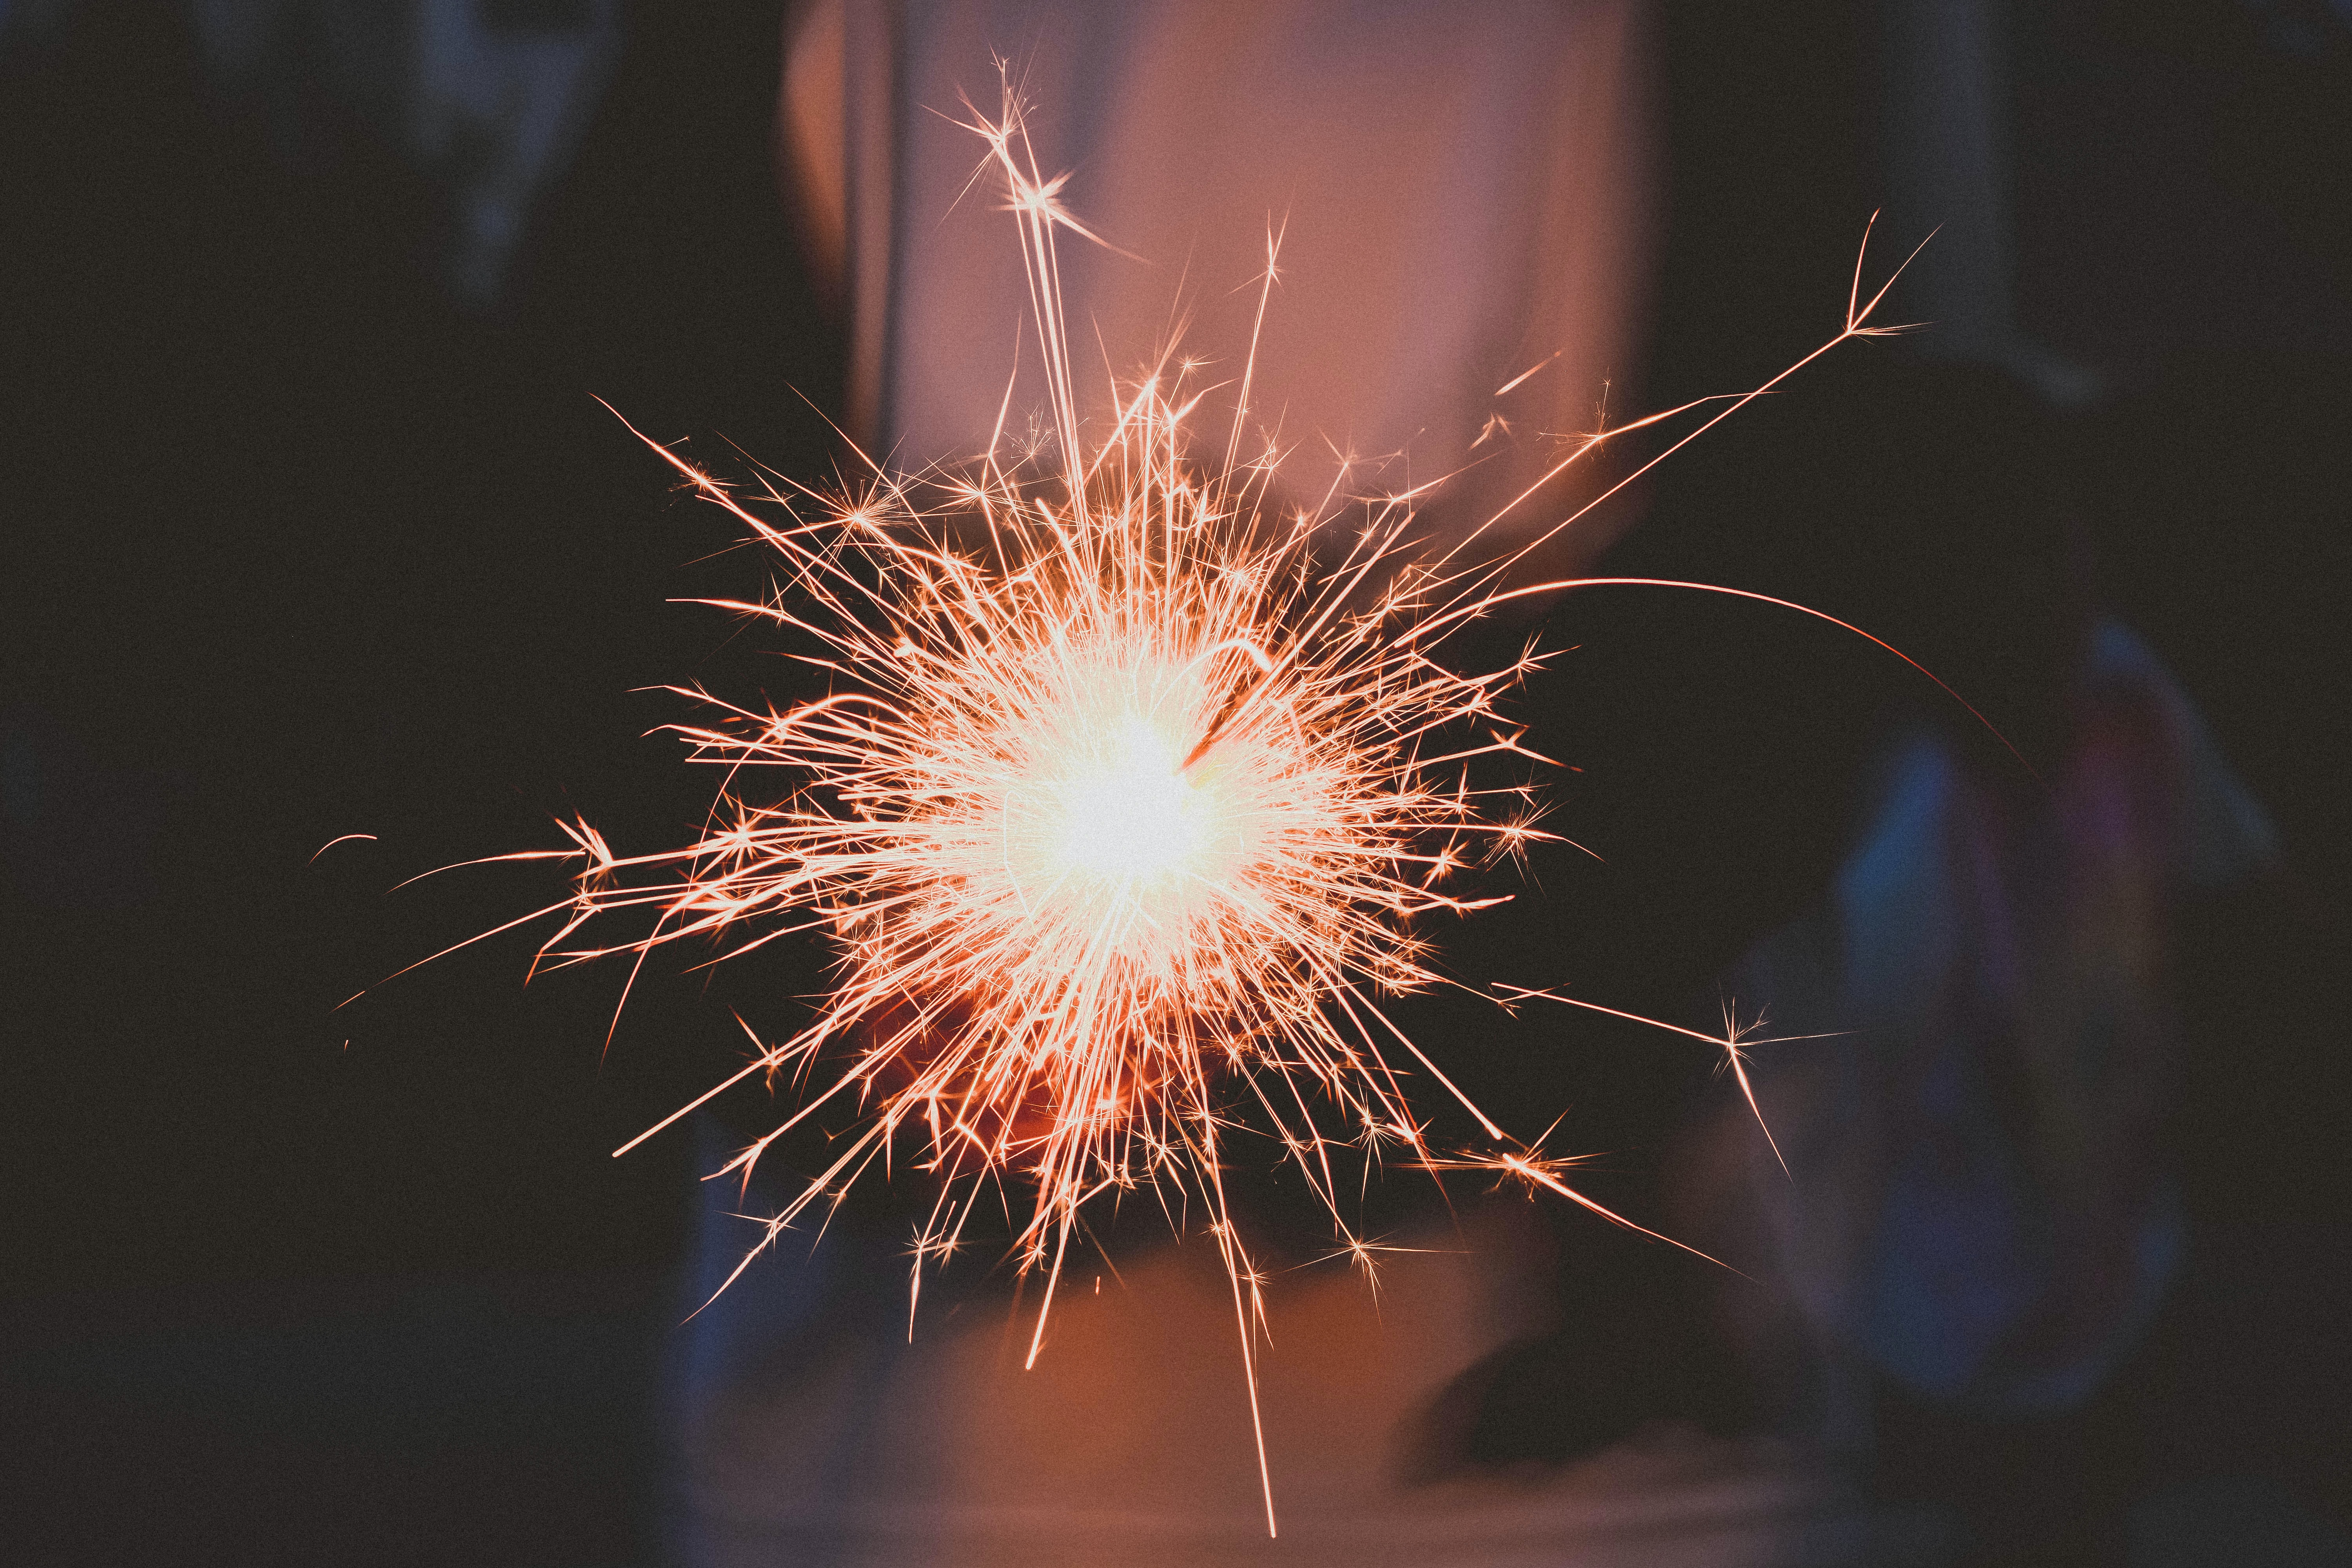 A sparkler burning at night